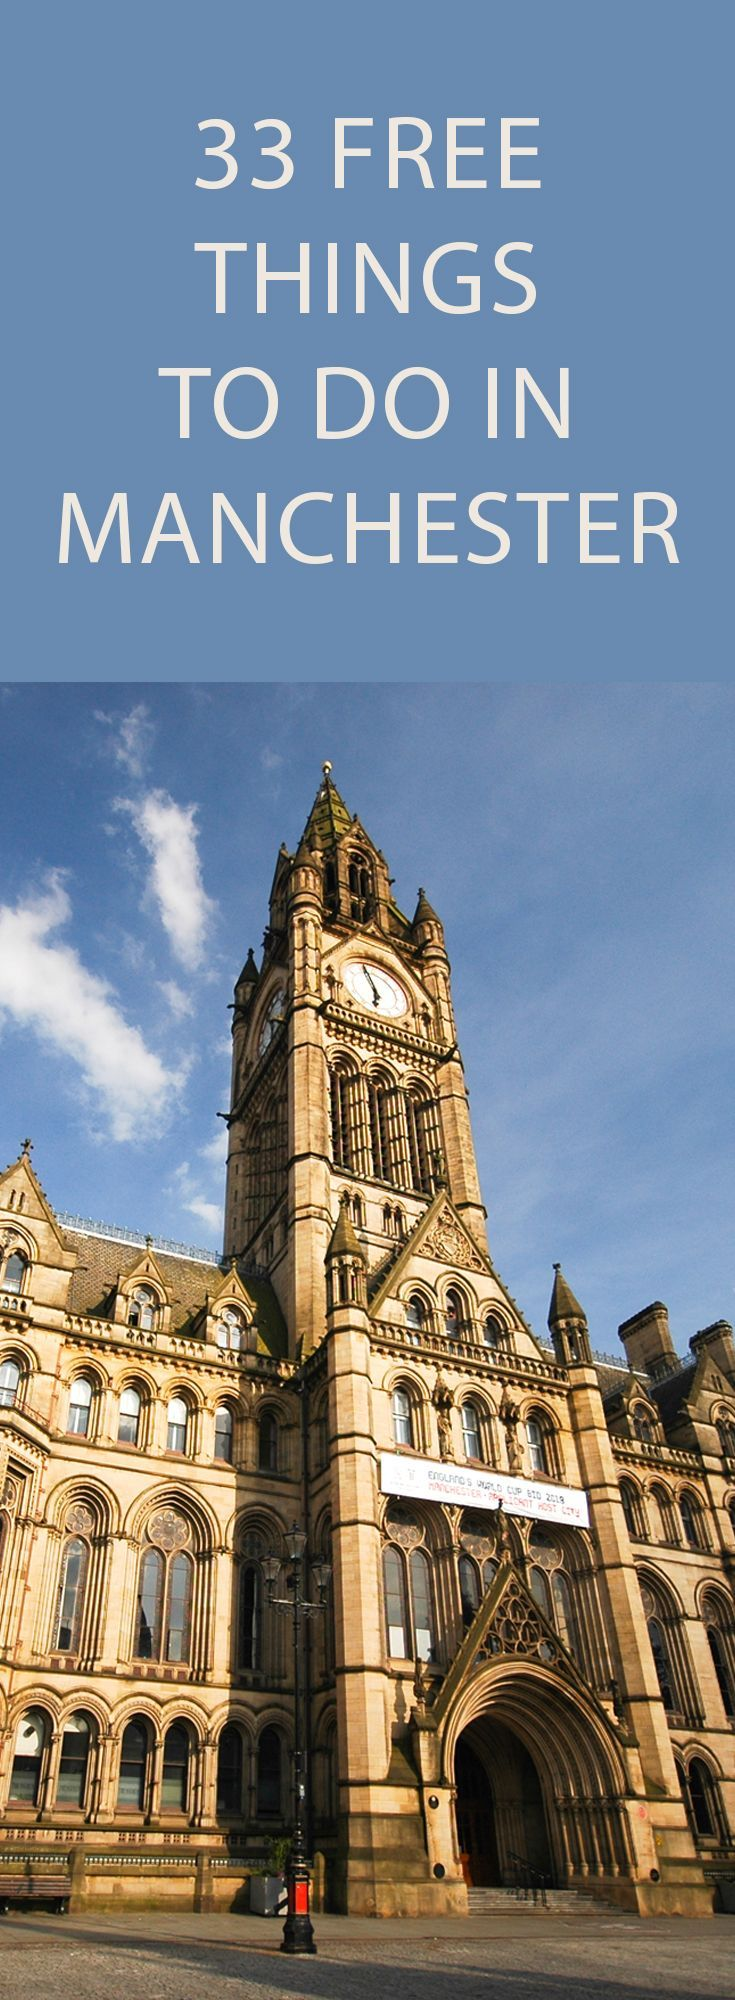 33 FREE Things To Do In Manchester